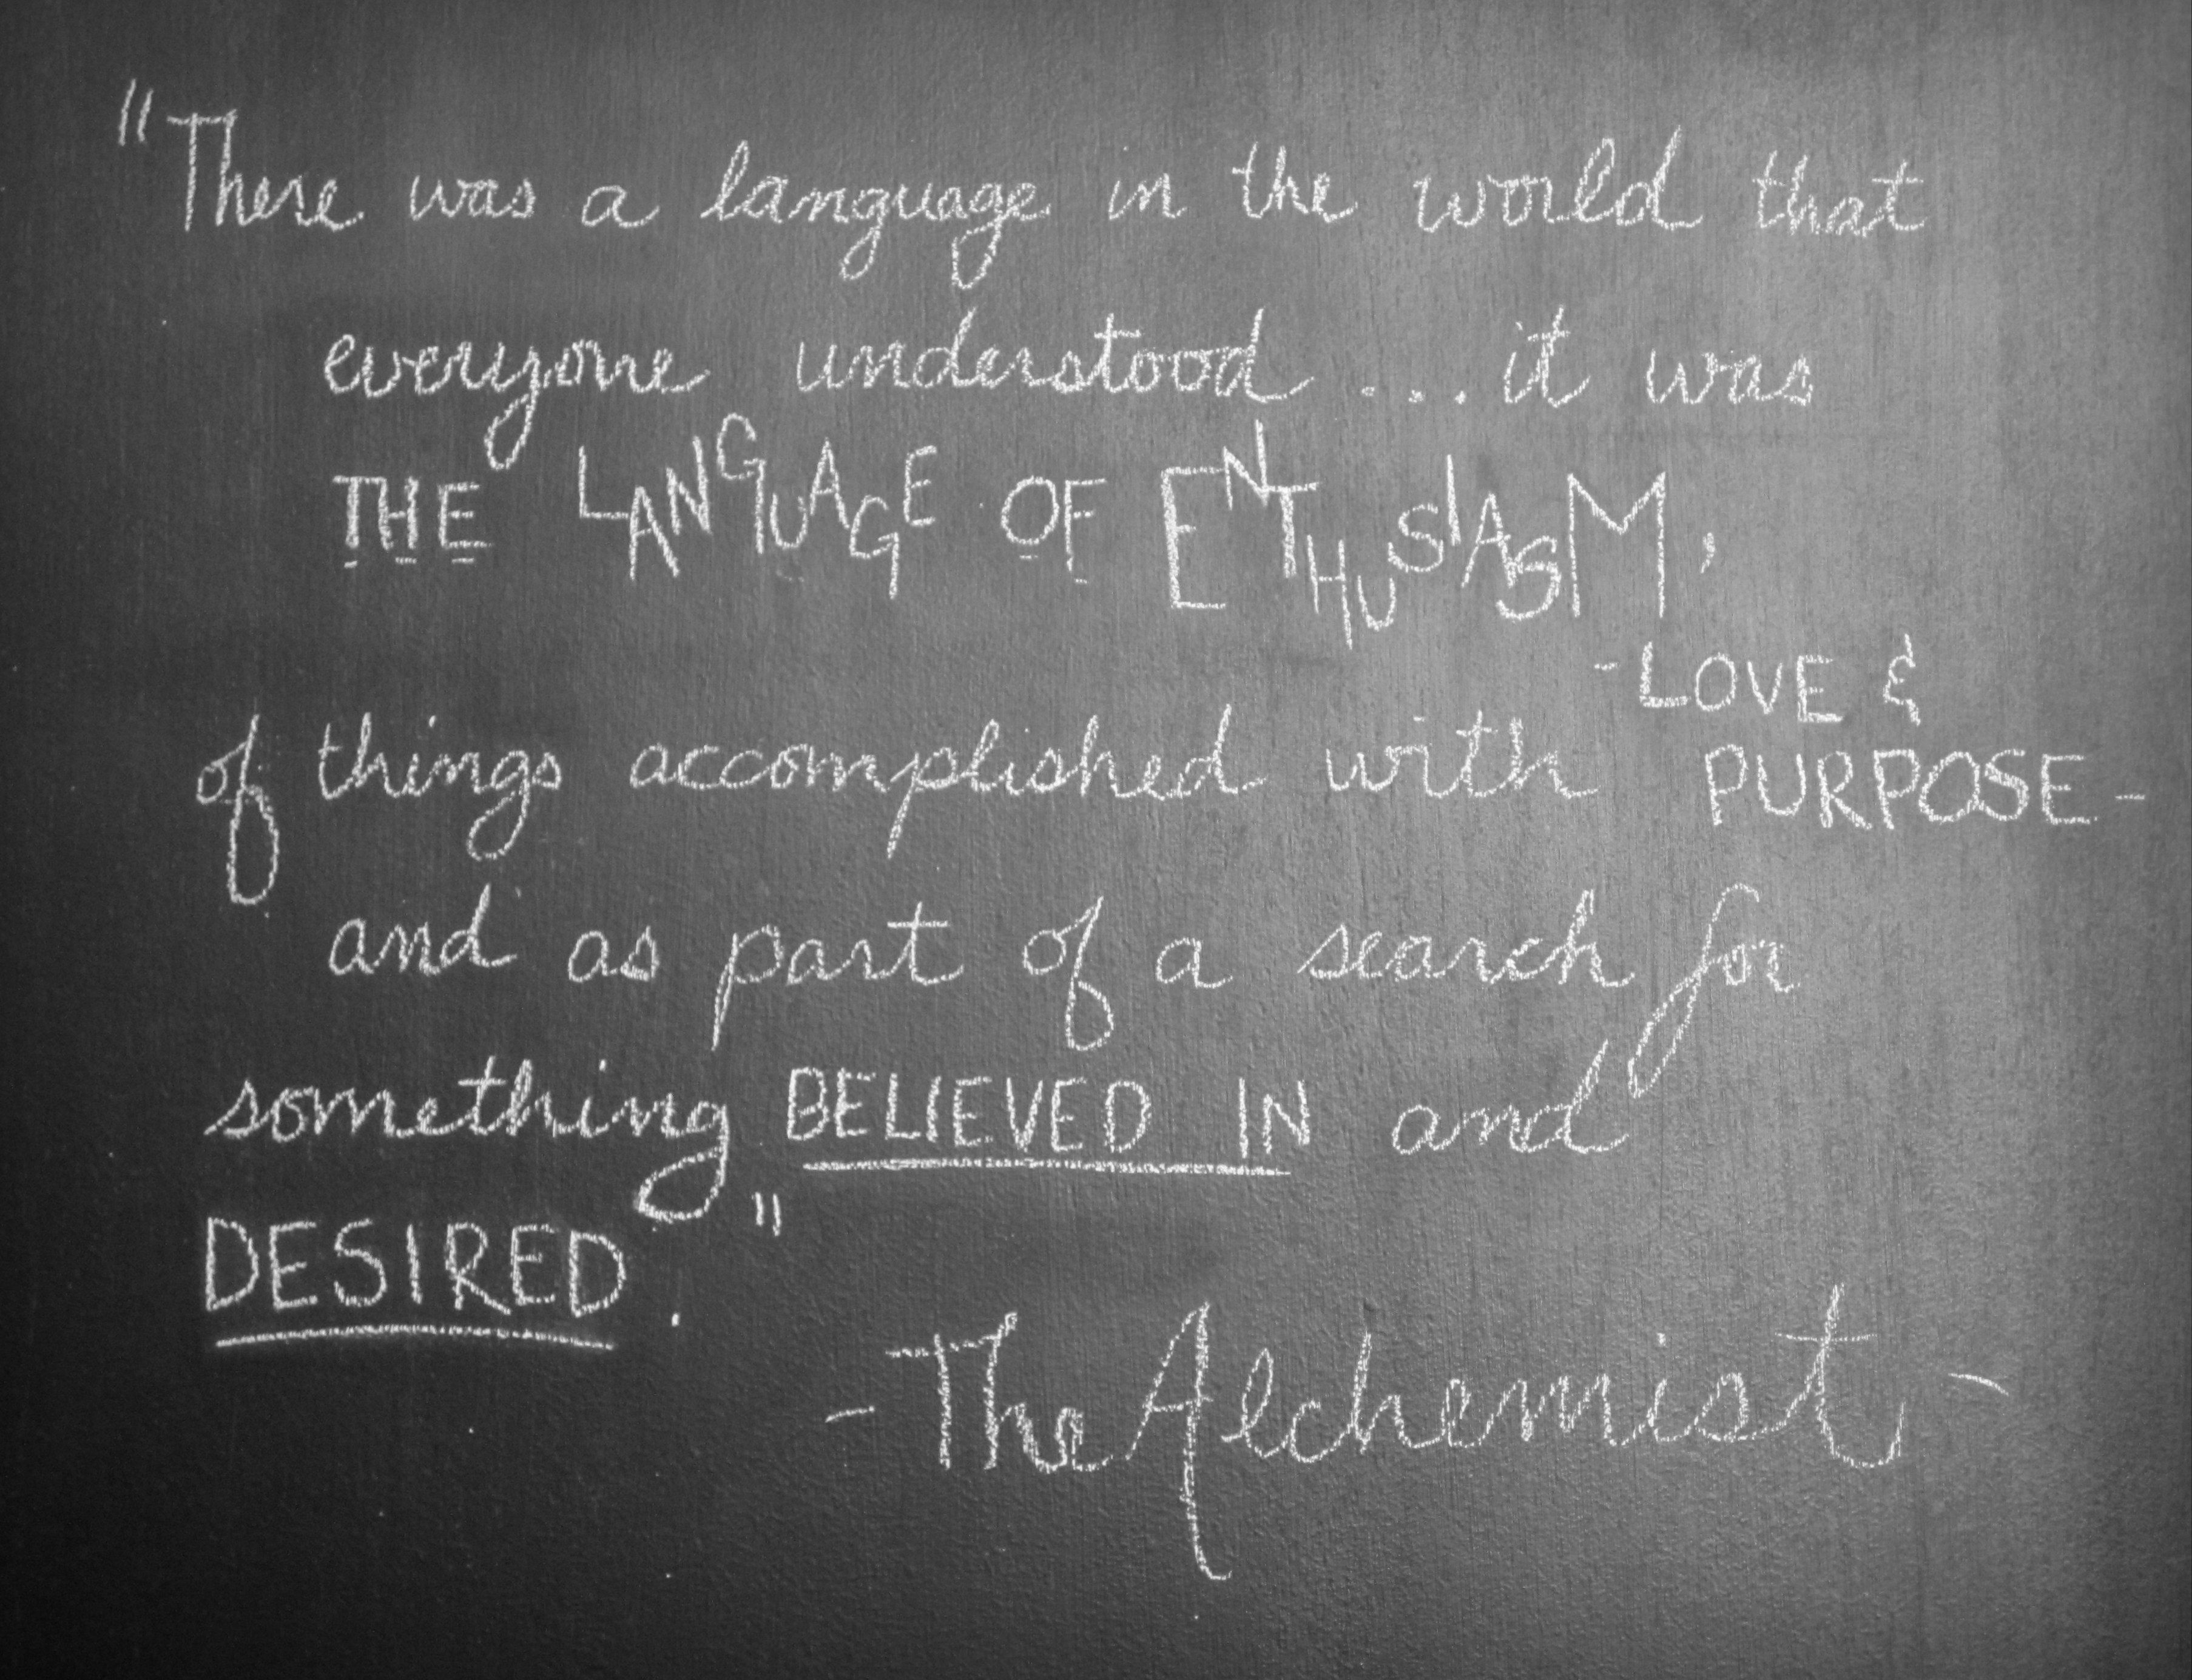 There was a language in the world that everyone understood... it was the language of enthusiasm, of things accomplished with love and purpose, and as part of a search for something believed in and desired. (The Alchemist)